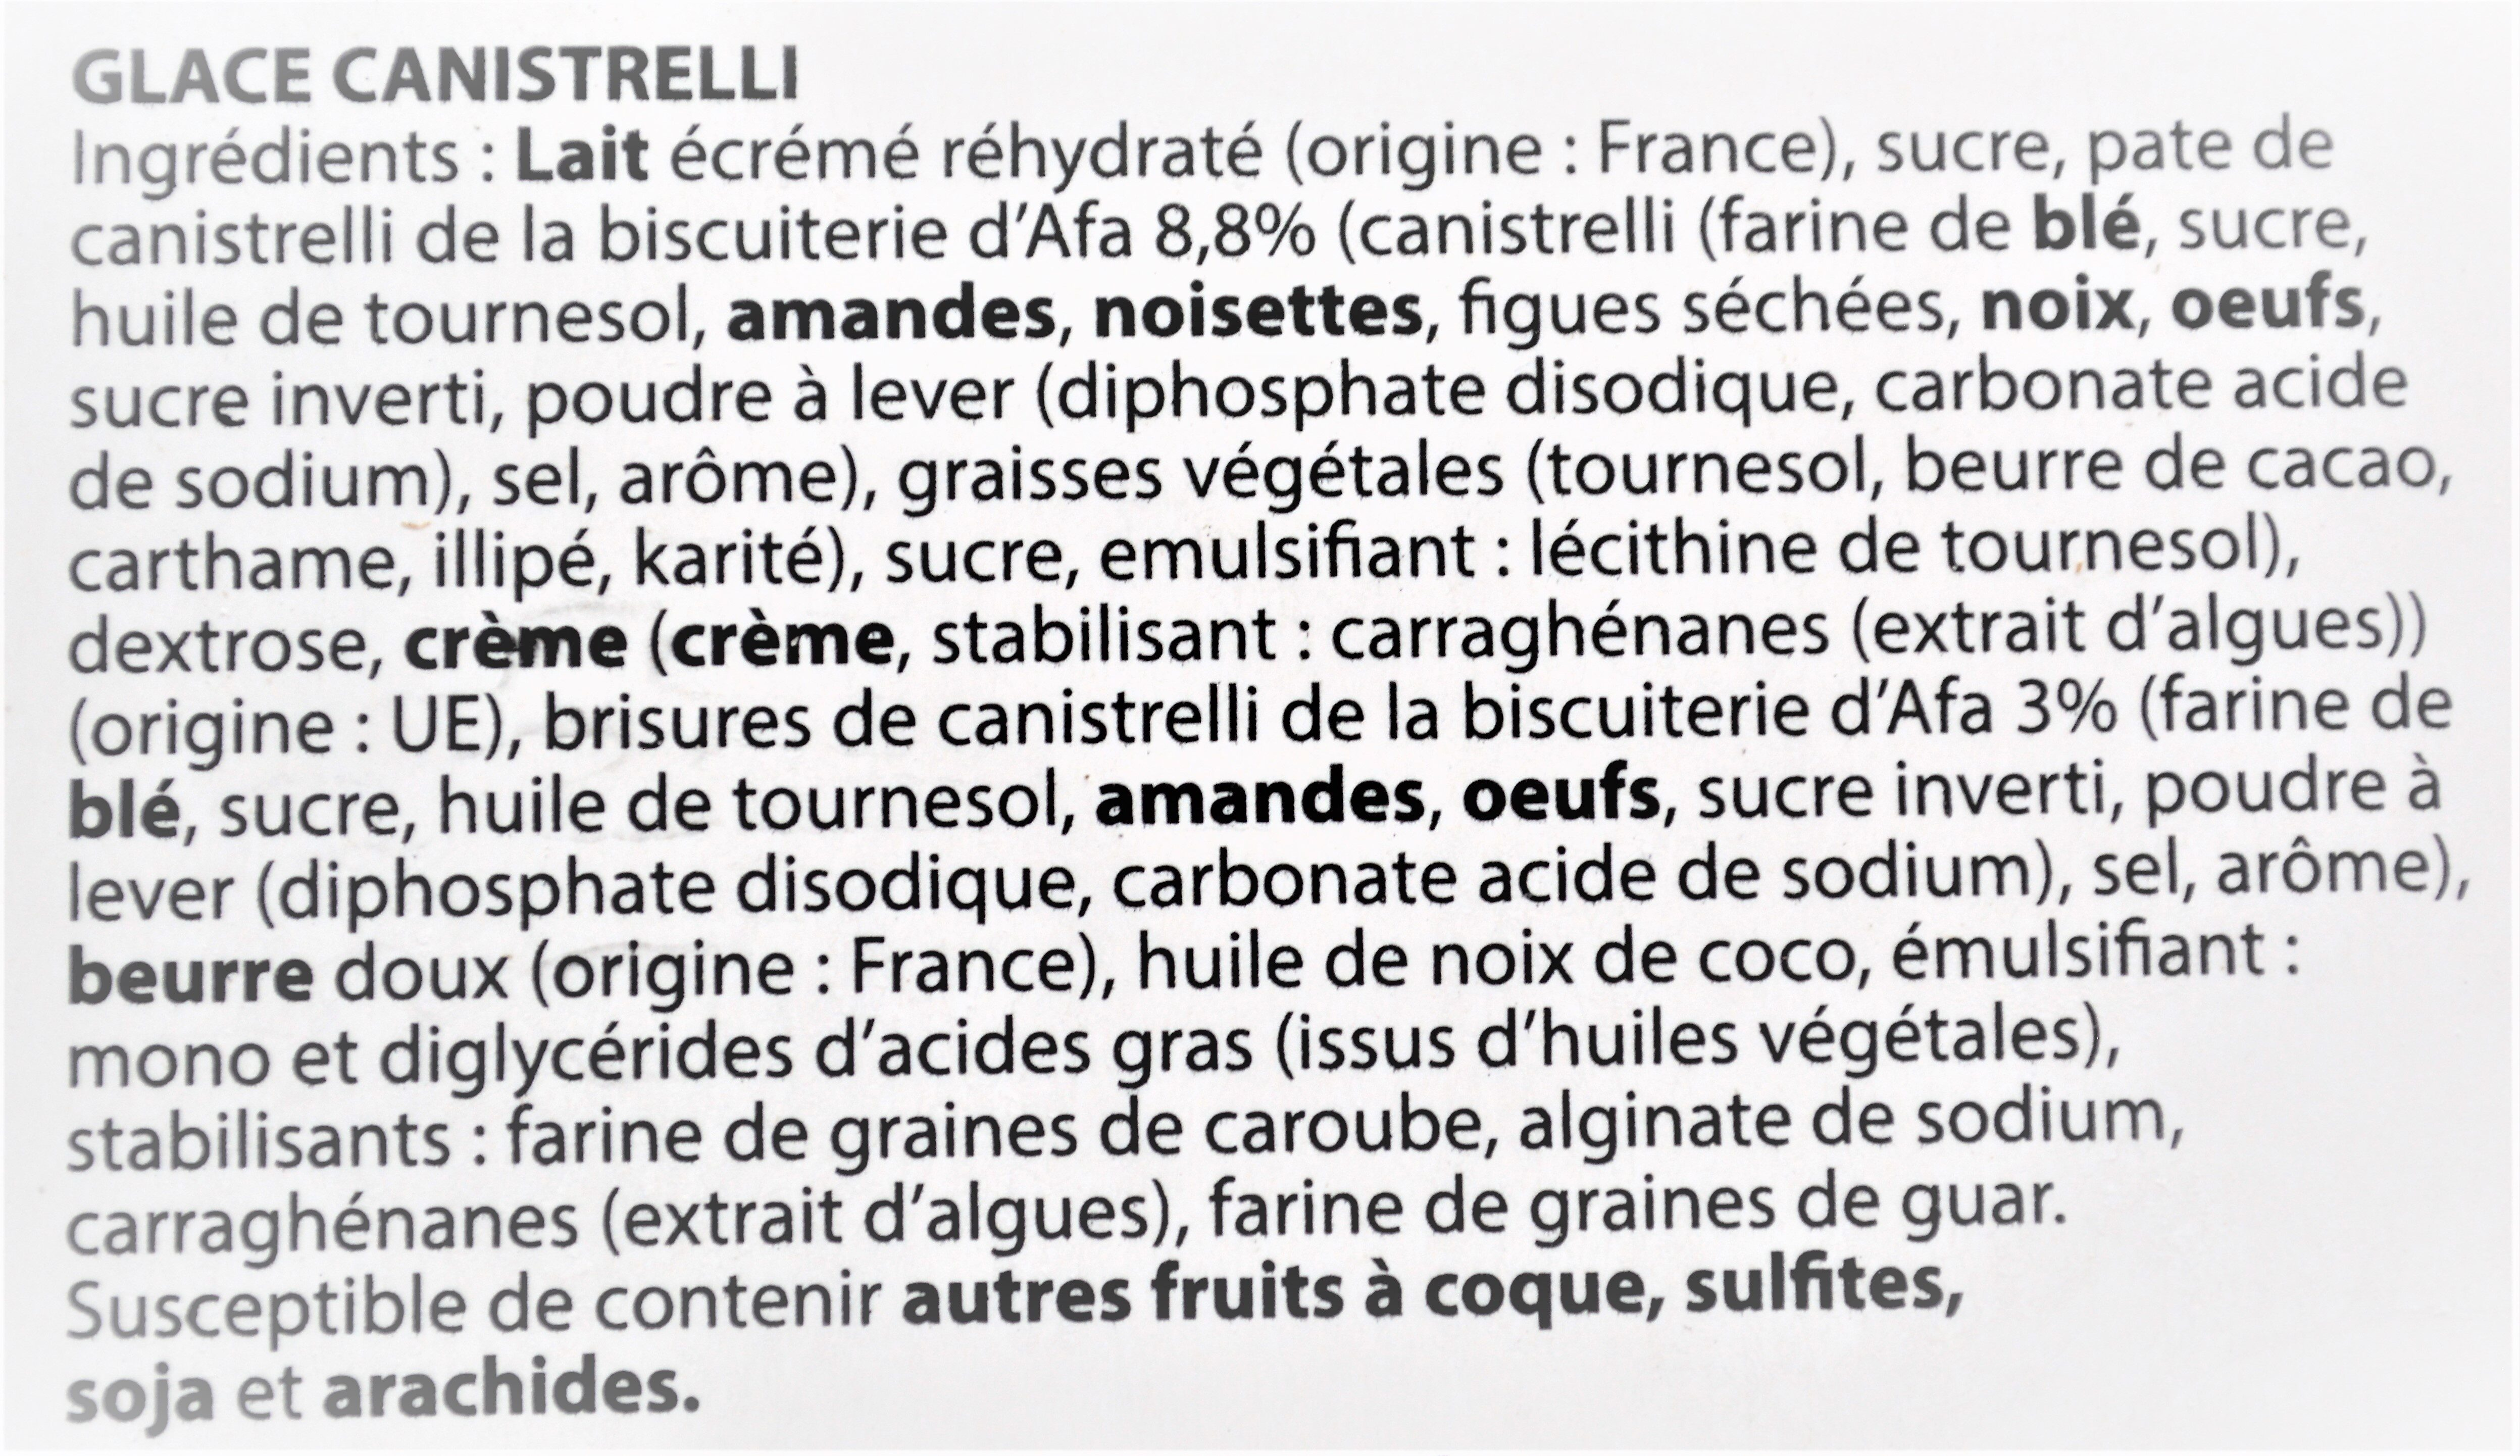 Glace canistrelli - Ingredients